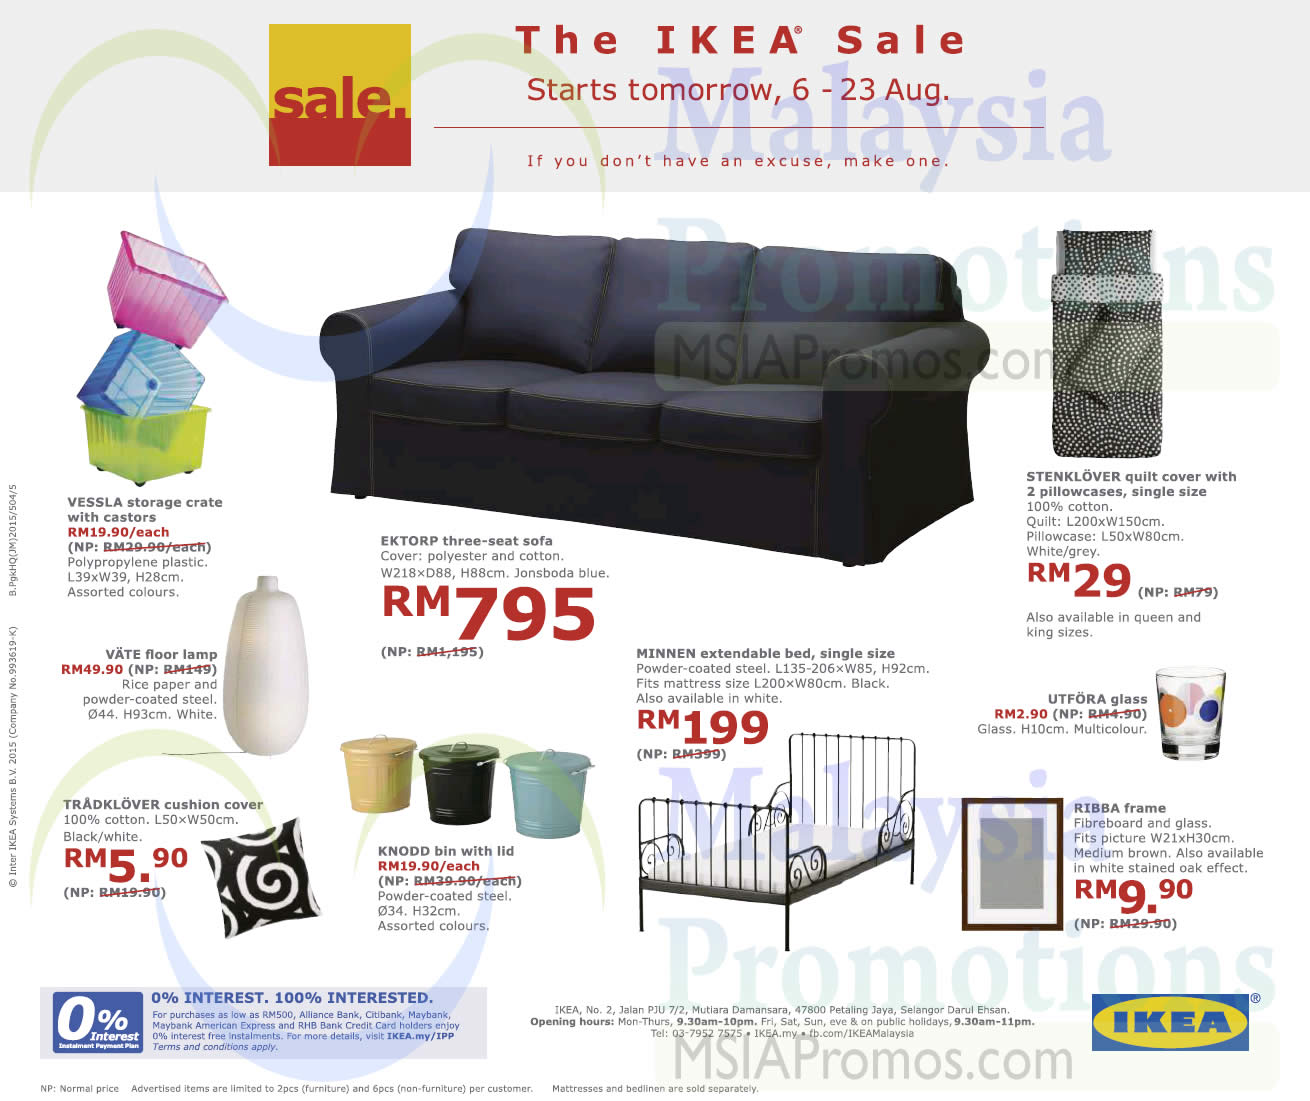 IKEA Sale 5   23 Aug 2015 UPDATED 6 Aug 2015. Page 3   IKEA  Aug 2017    MSIAPromos com